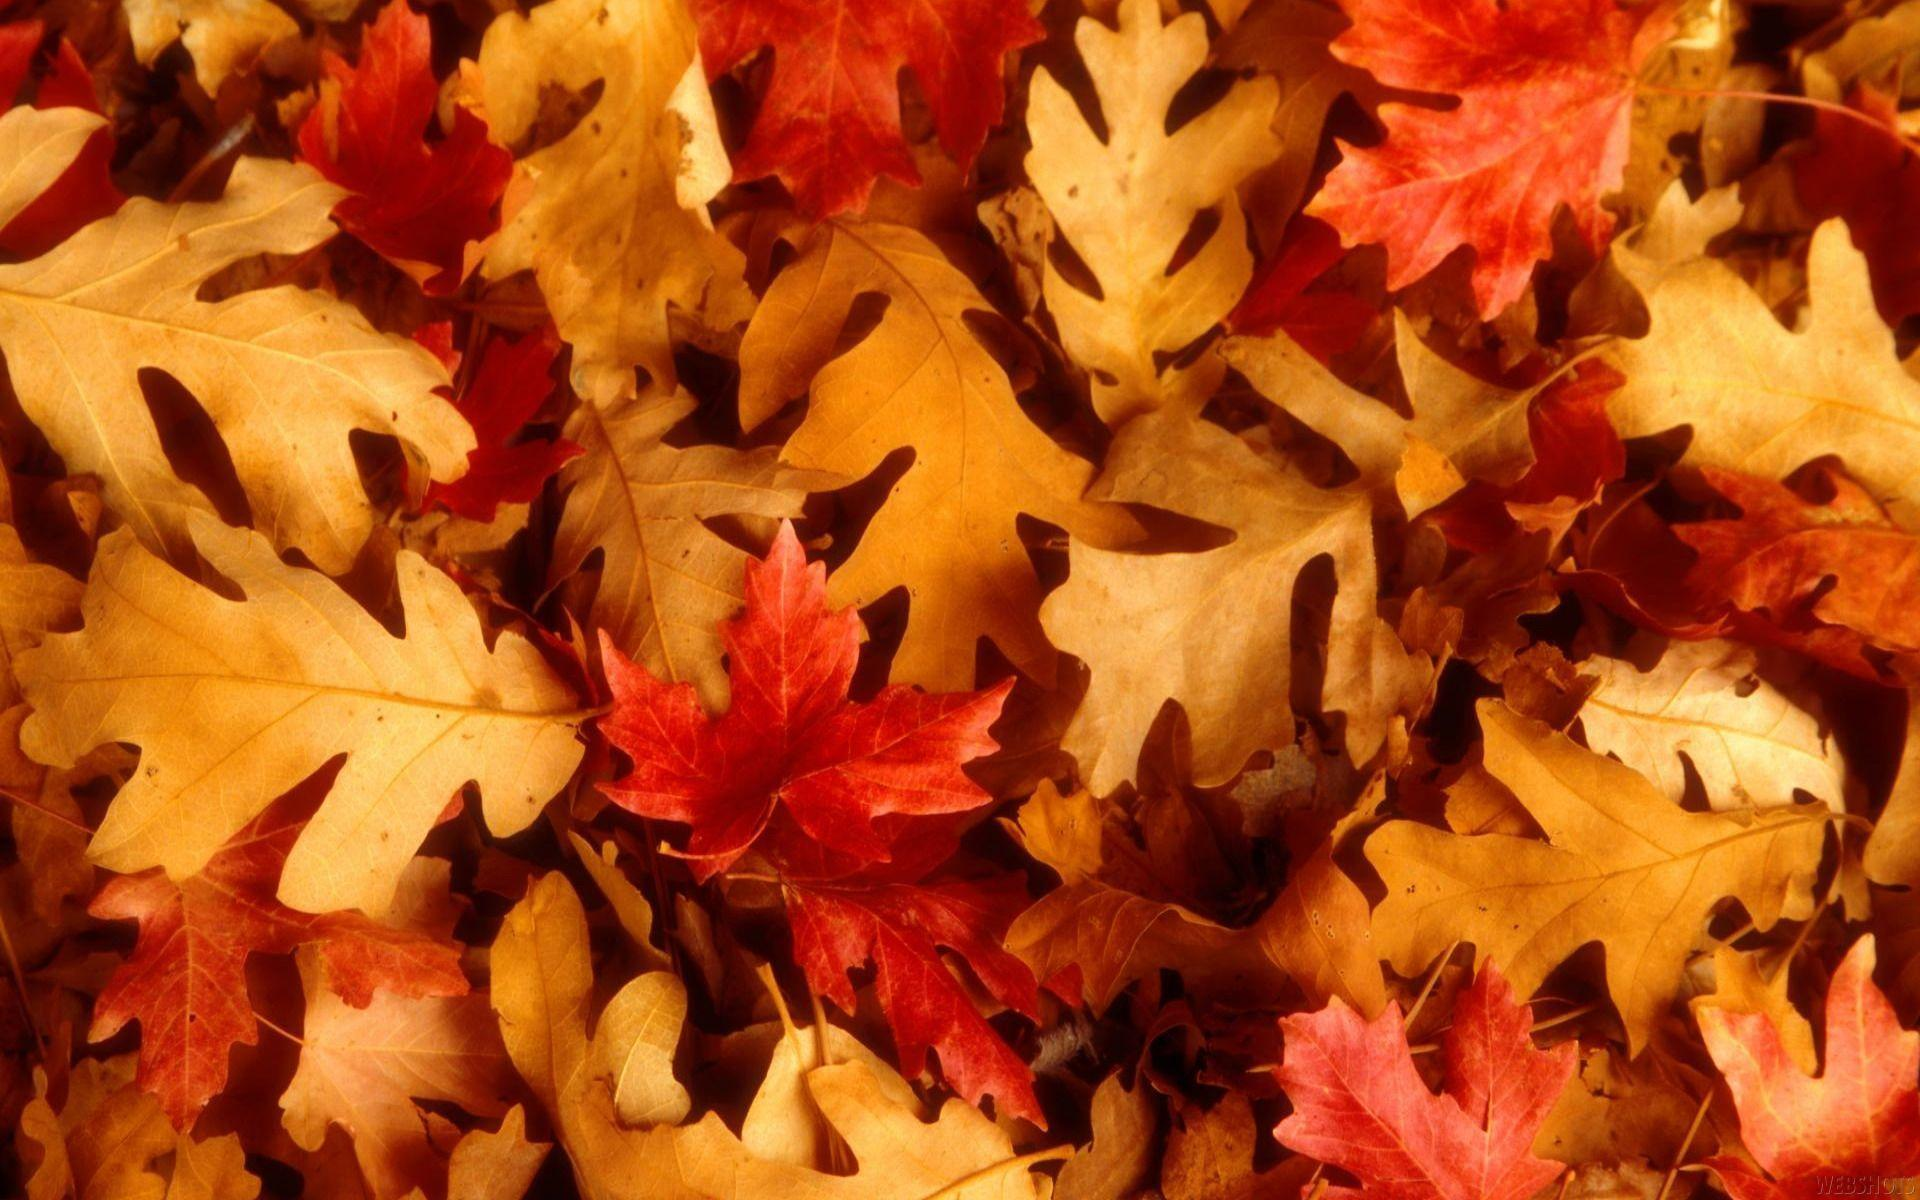 Free Desktop Wallpaper Autumn Leaves: Fall Leaves Backgrounds